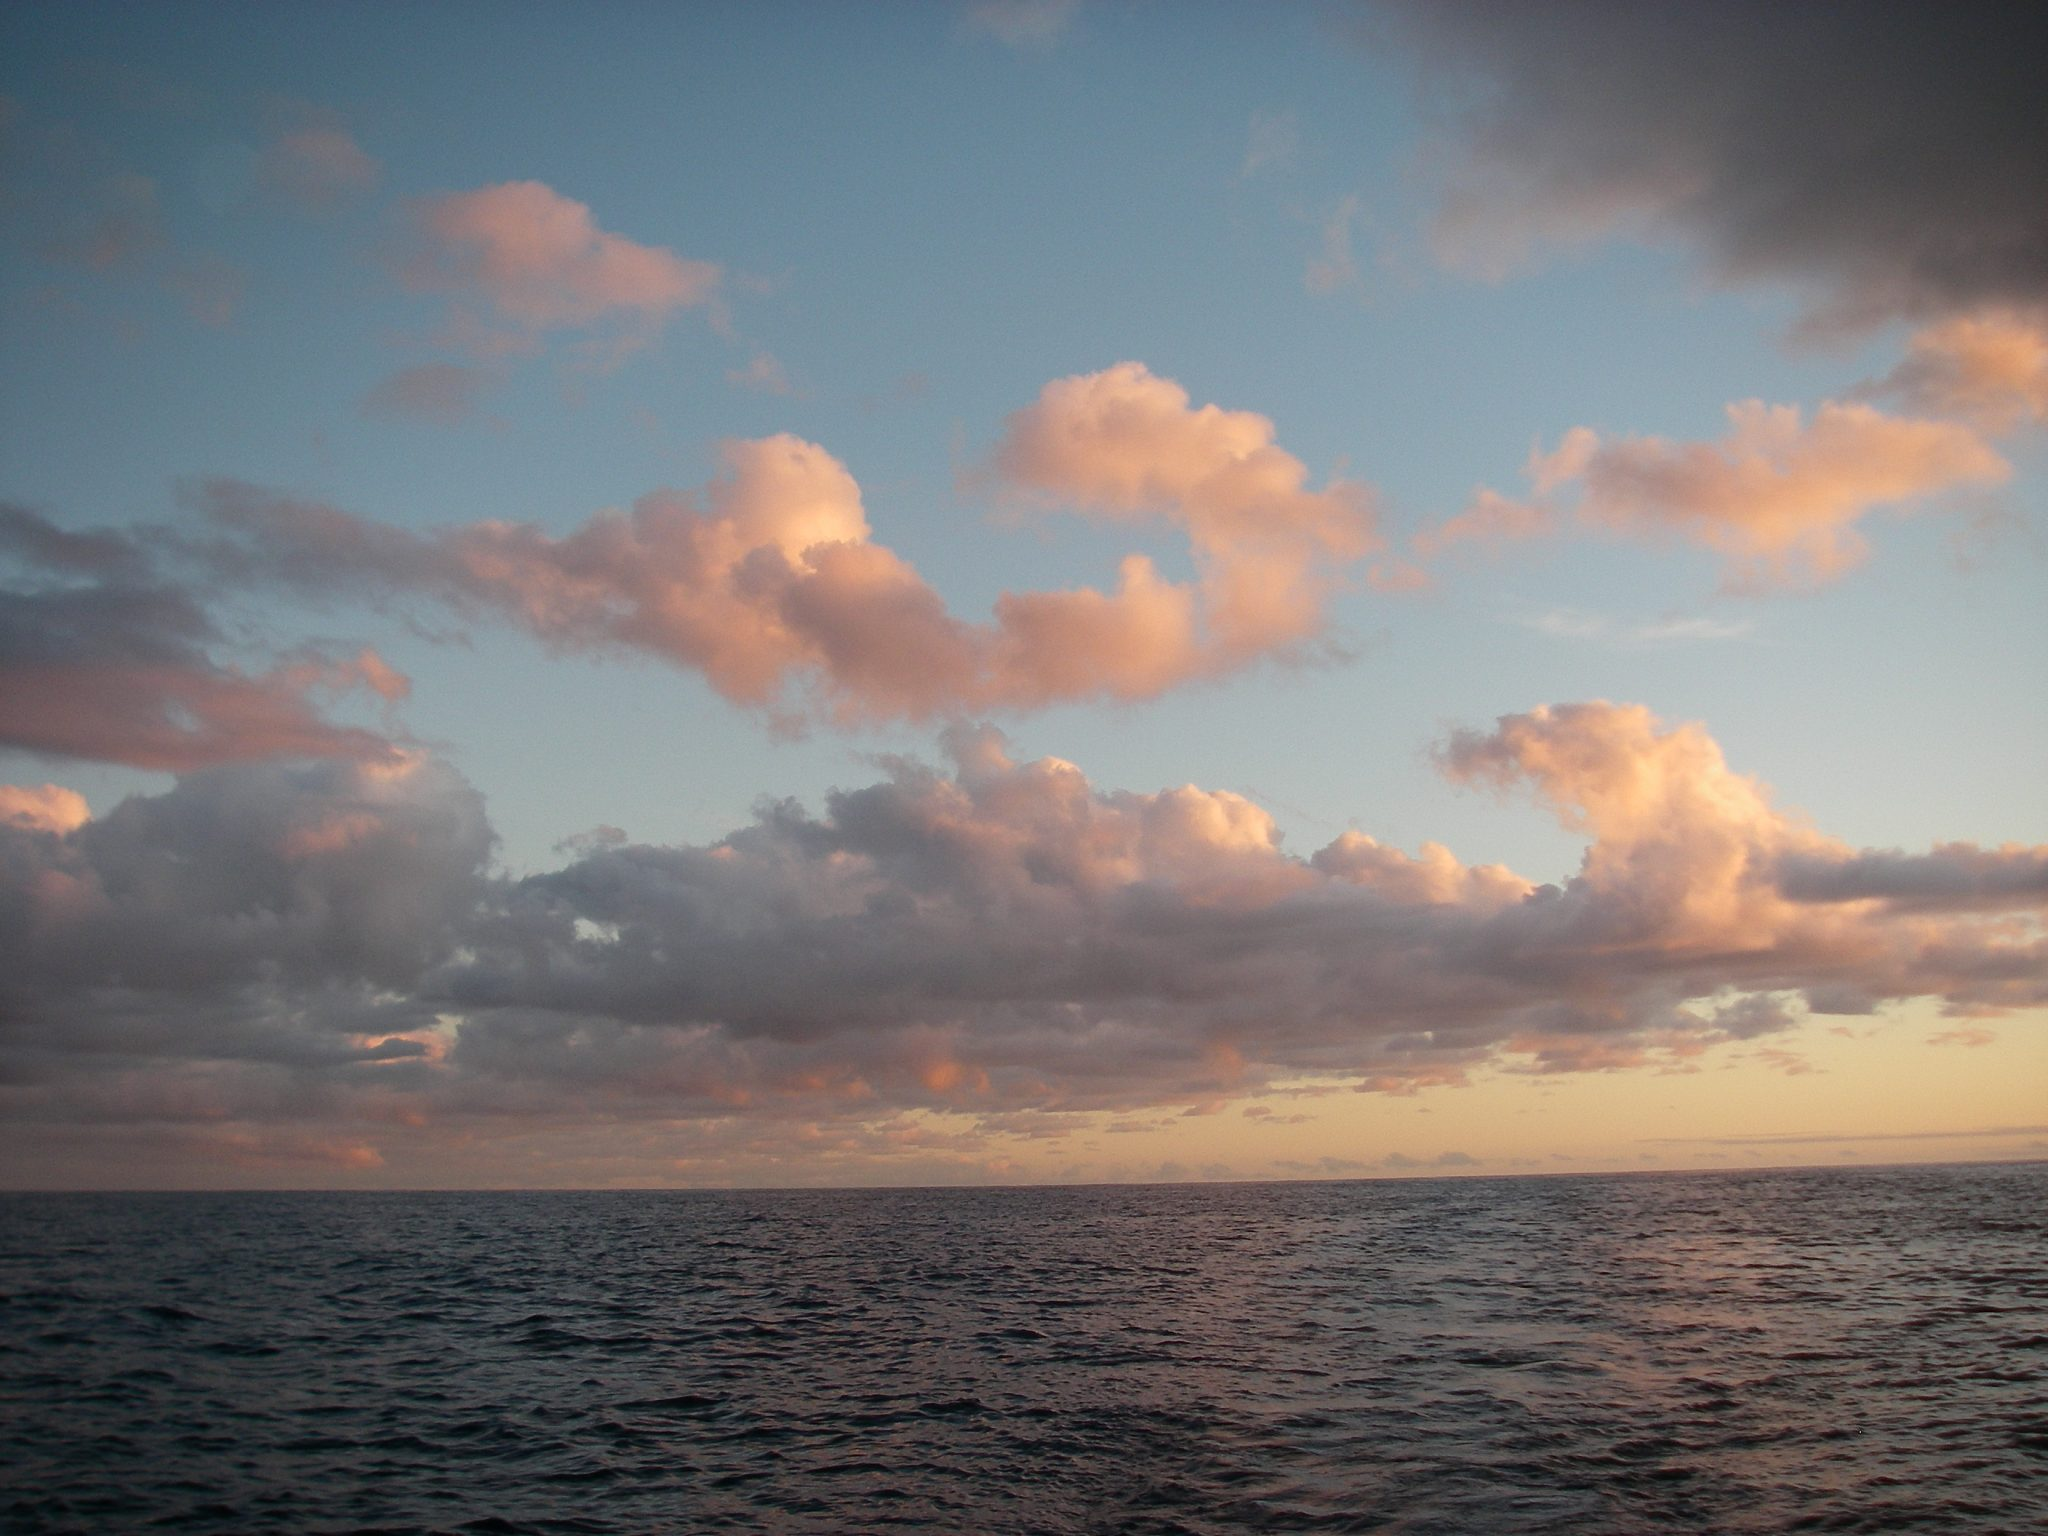 76. Another exordinarily beautiful sky greeted Joyful on the Tasman Sea